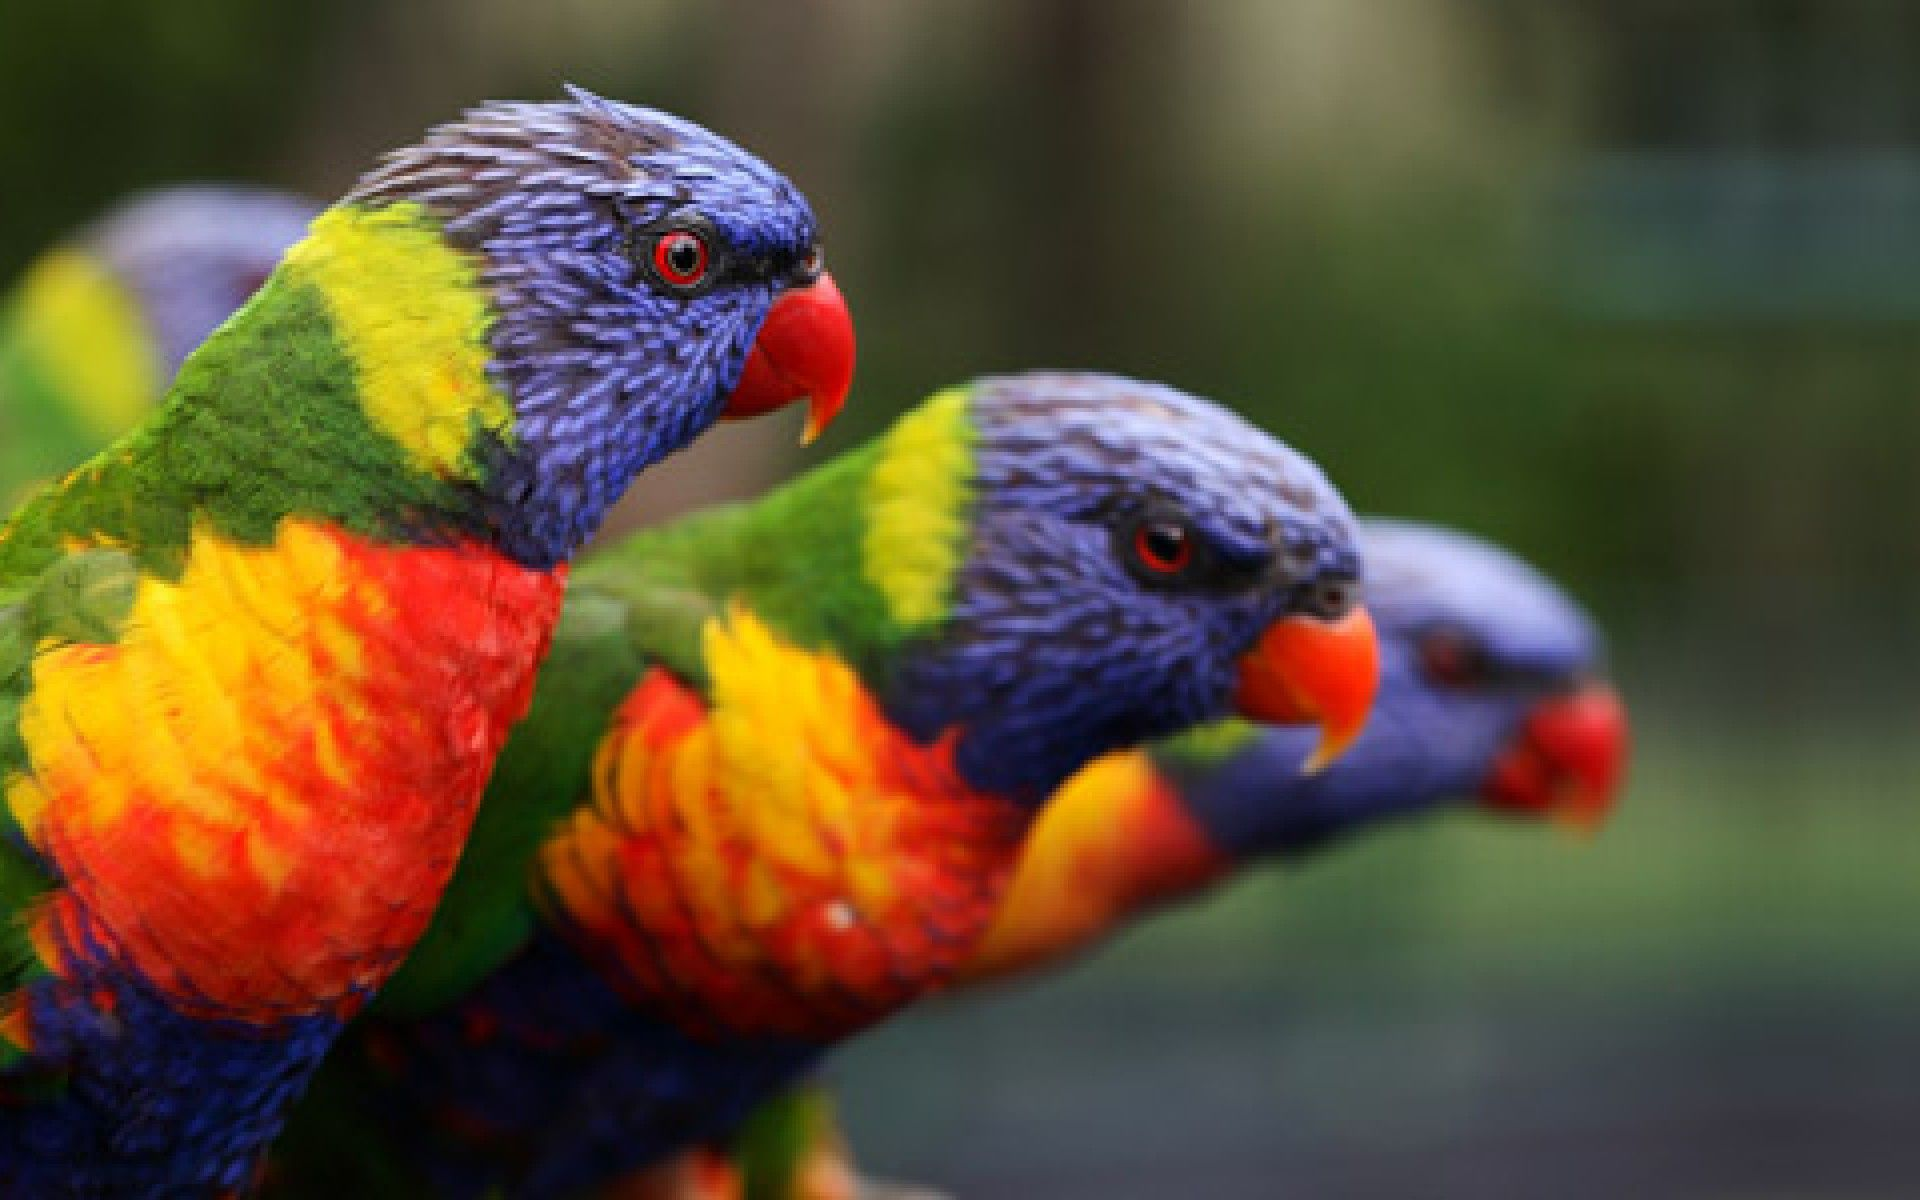 Wallpaper download free image search hd - Parrots Wallpapers Downloads Free 1920 1200 Parrots Pictures Wallpapers 55 Wallpapers Adorable